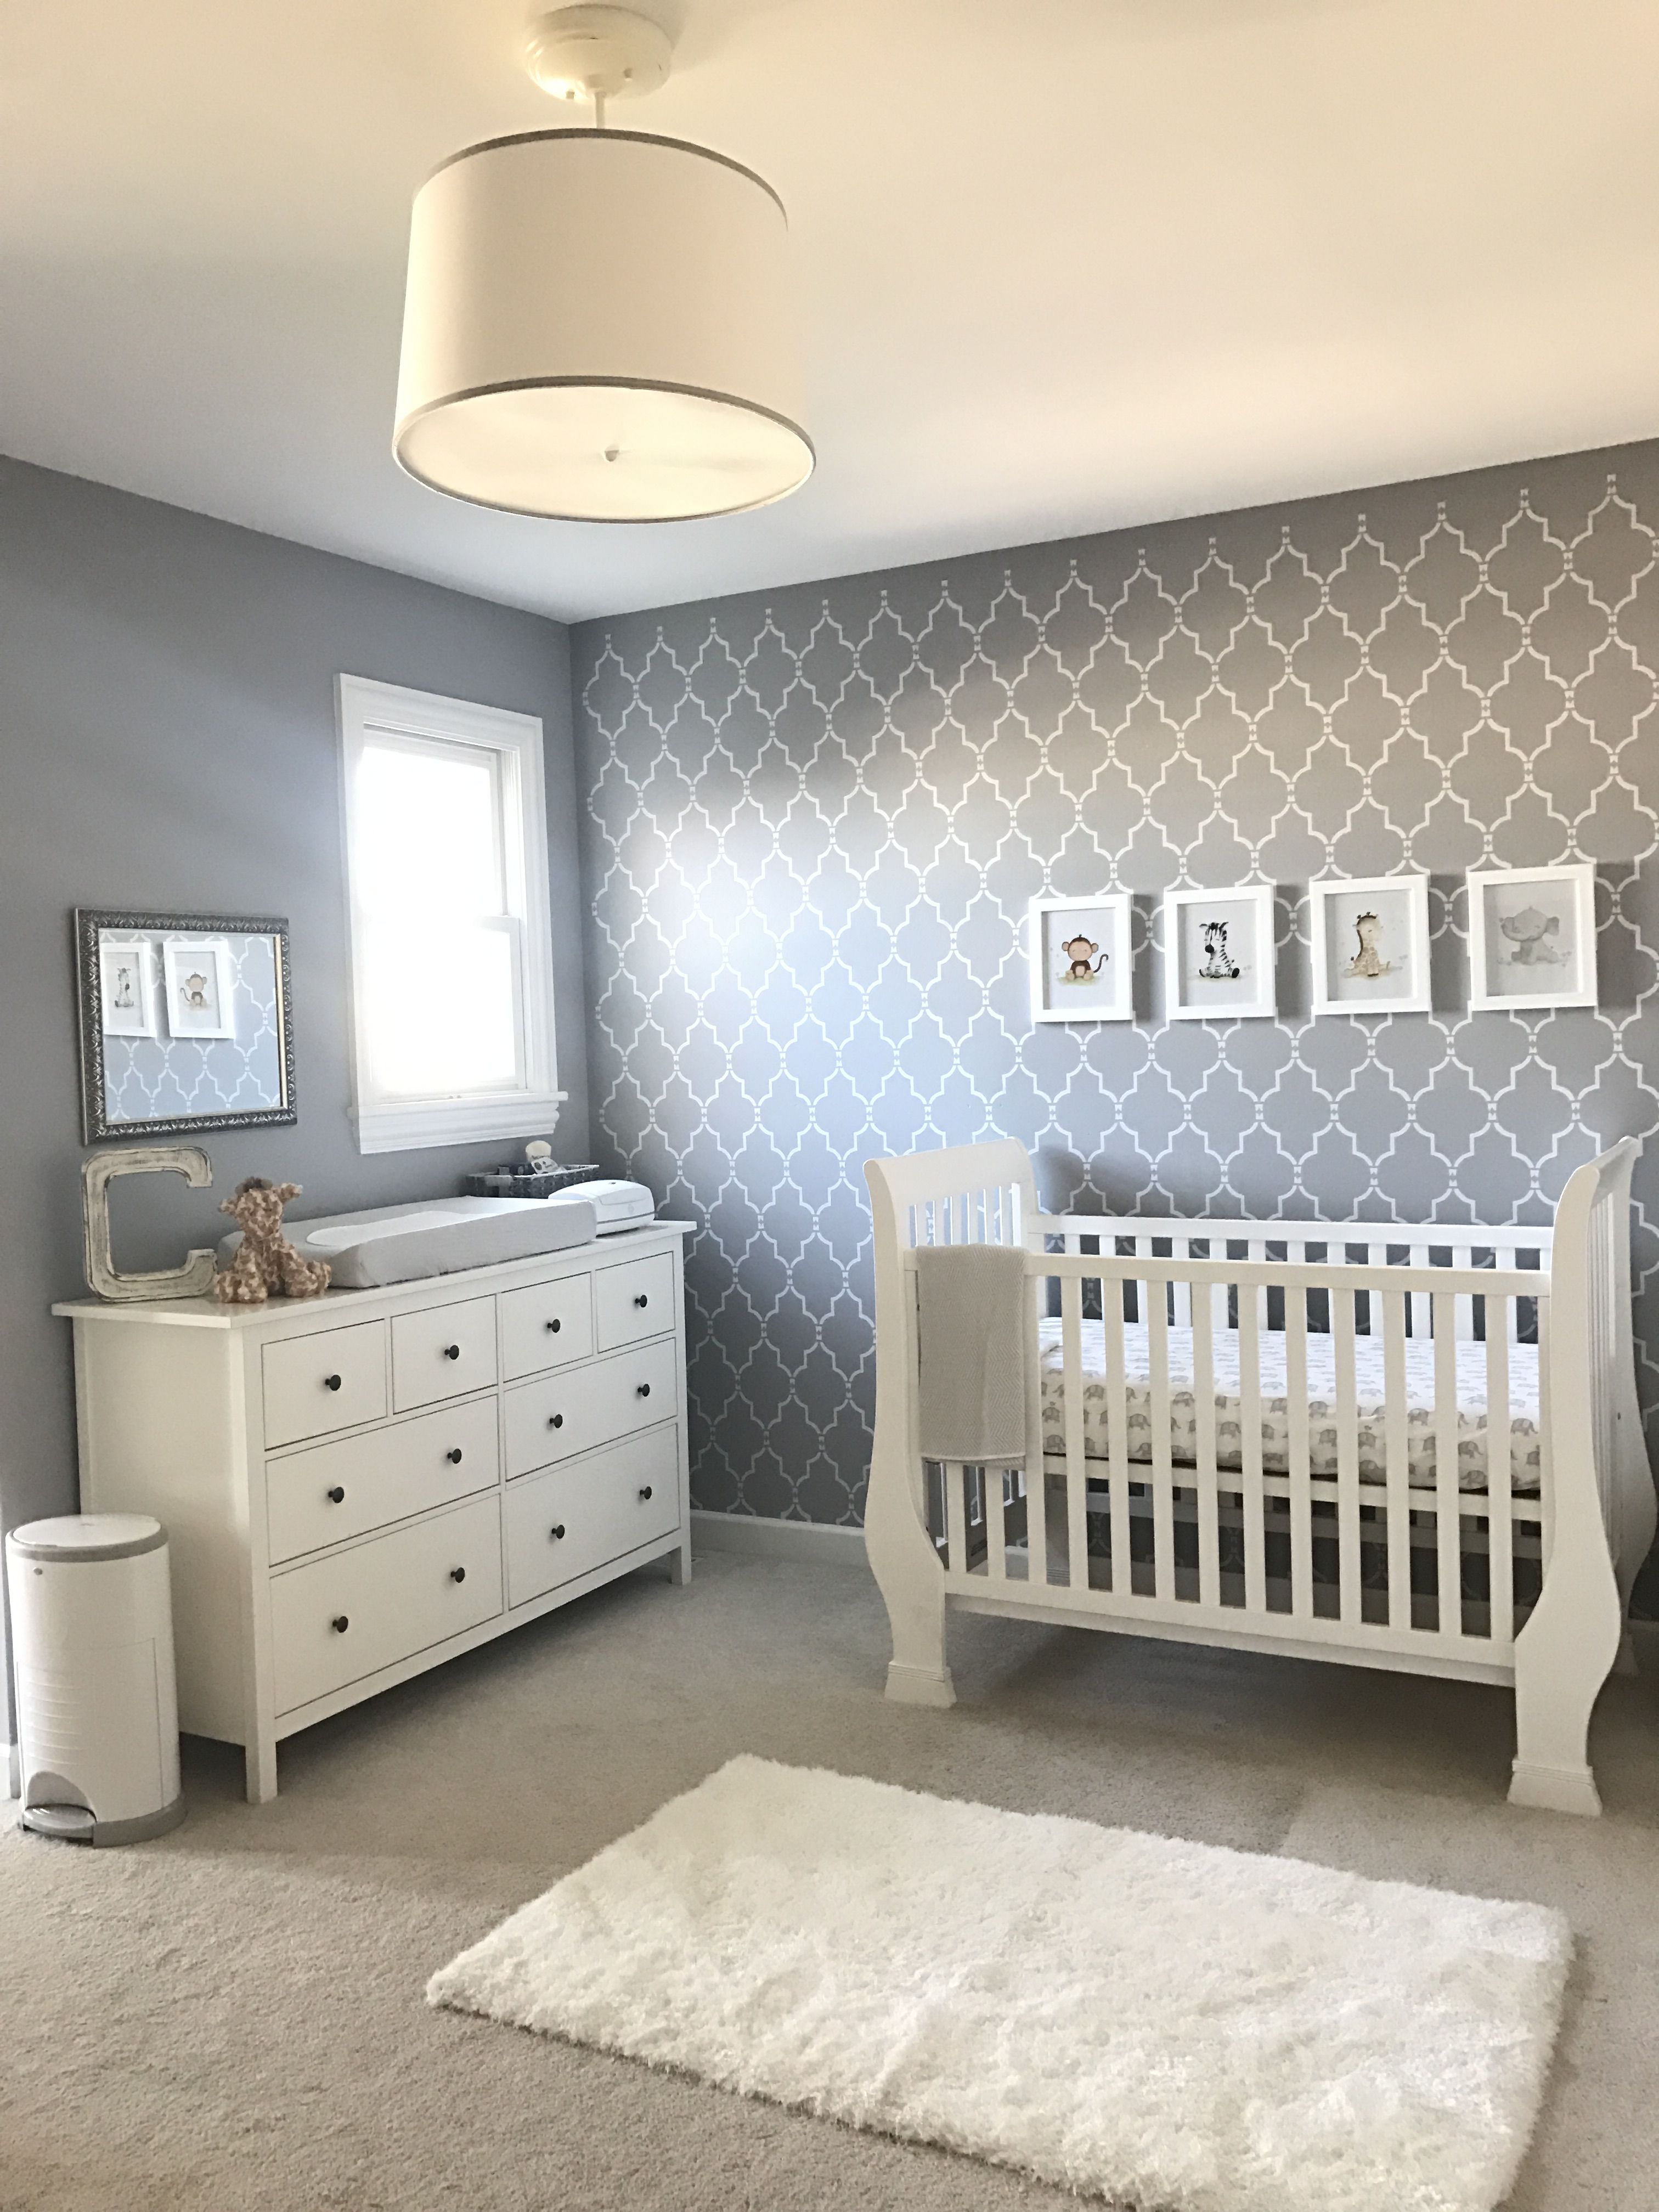 Kinderzimmerdeko You are never too young to live in style.  Shop children's furniture LSVYAGY